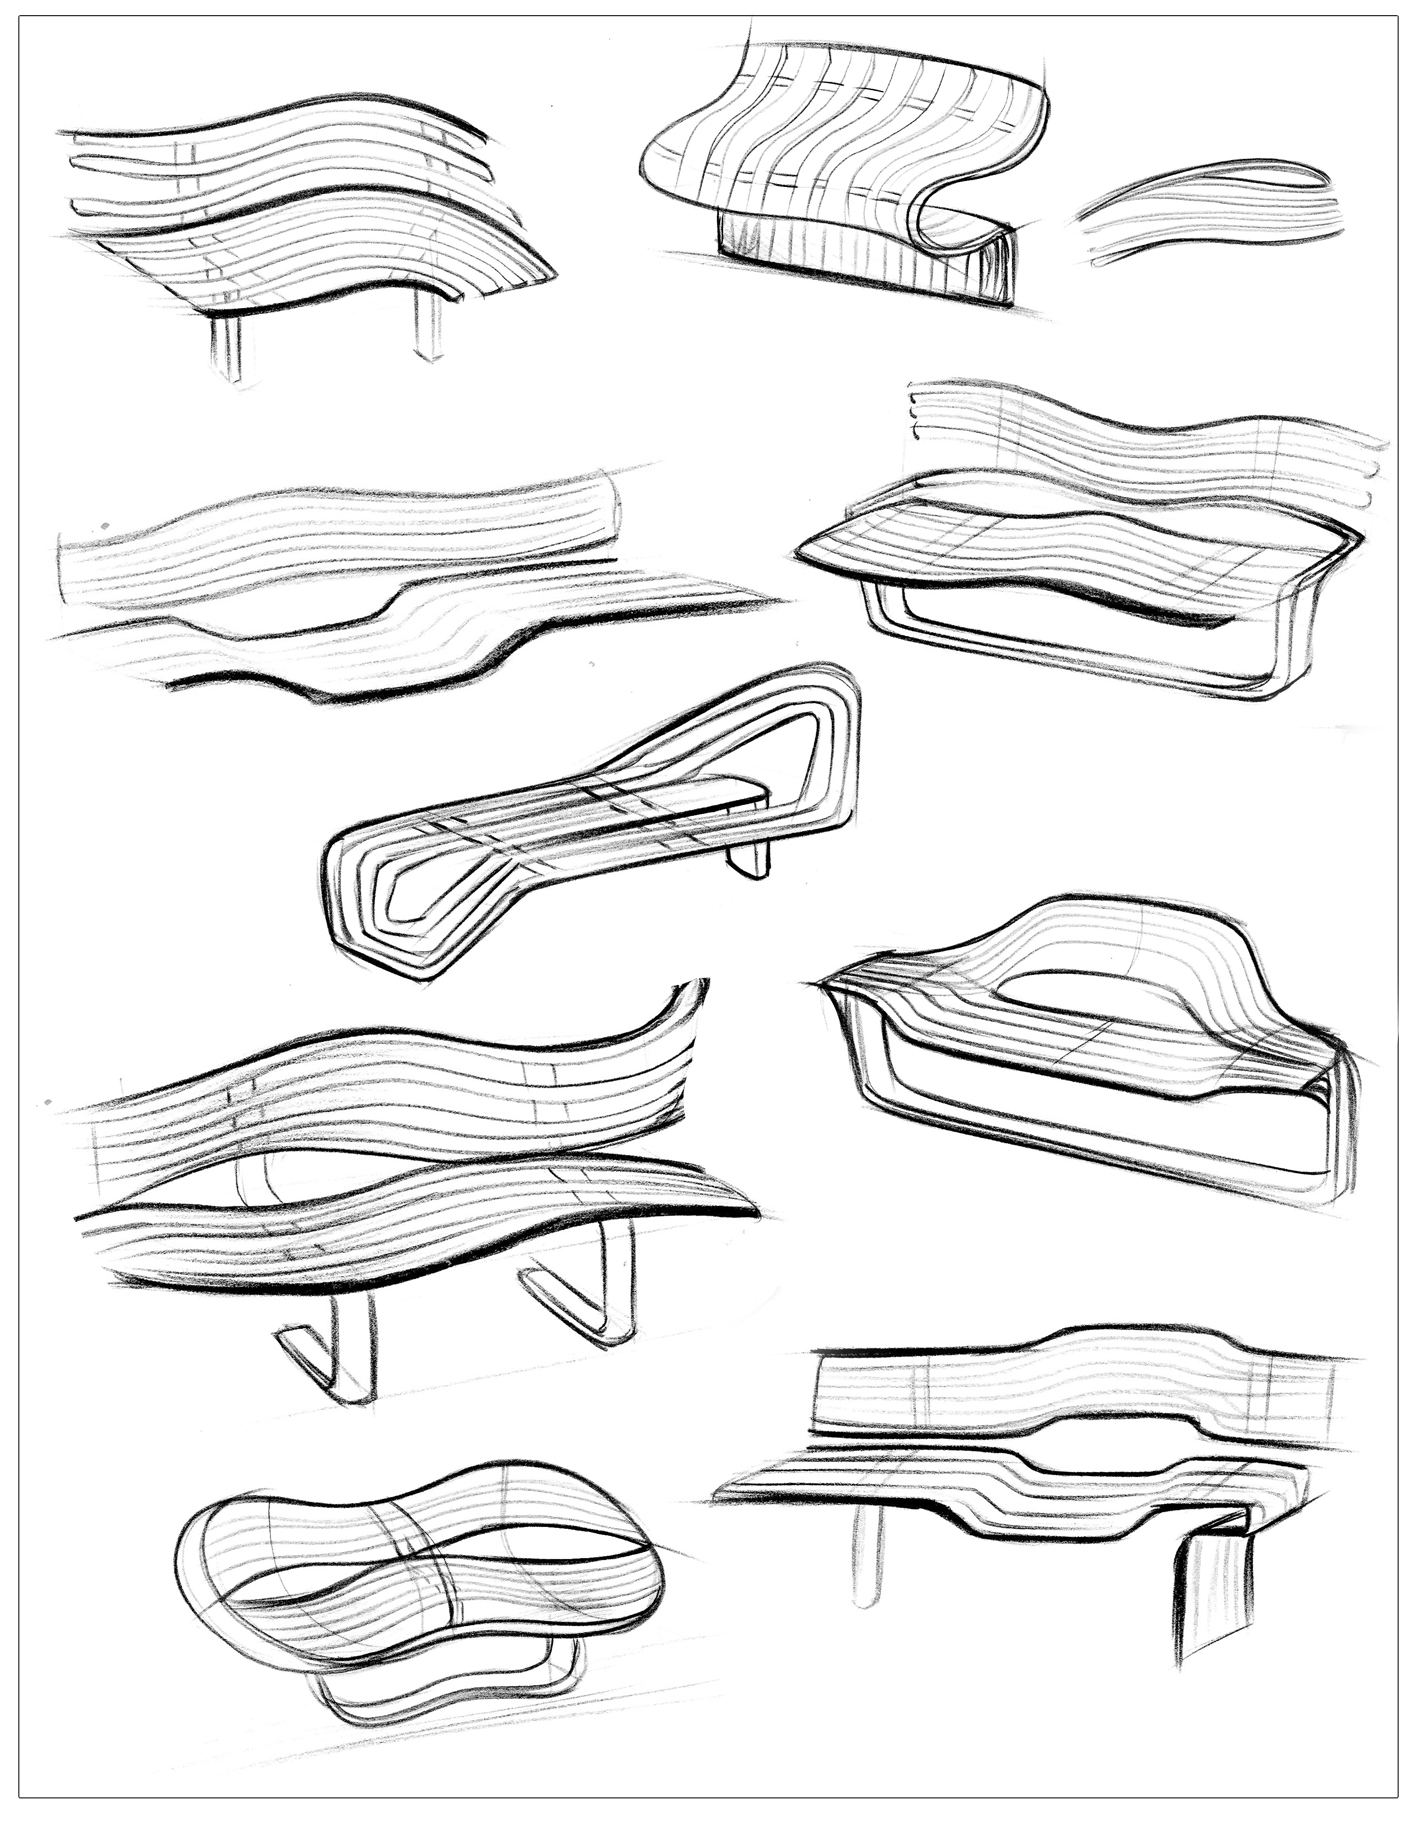 1417x1833 Image Result For Bench Design Sketches Inspiratie